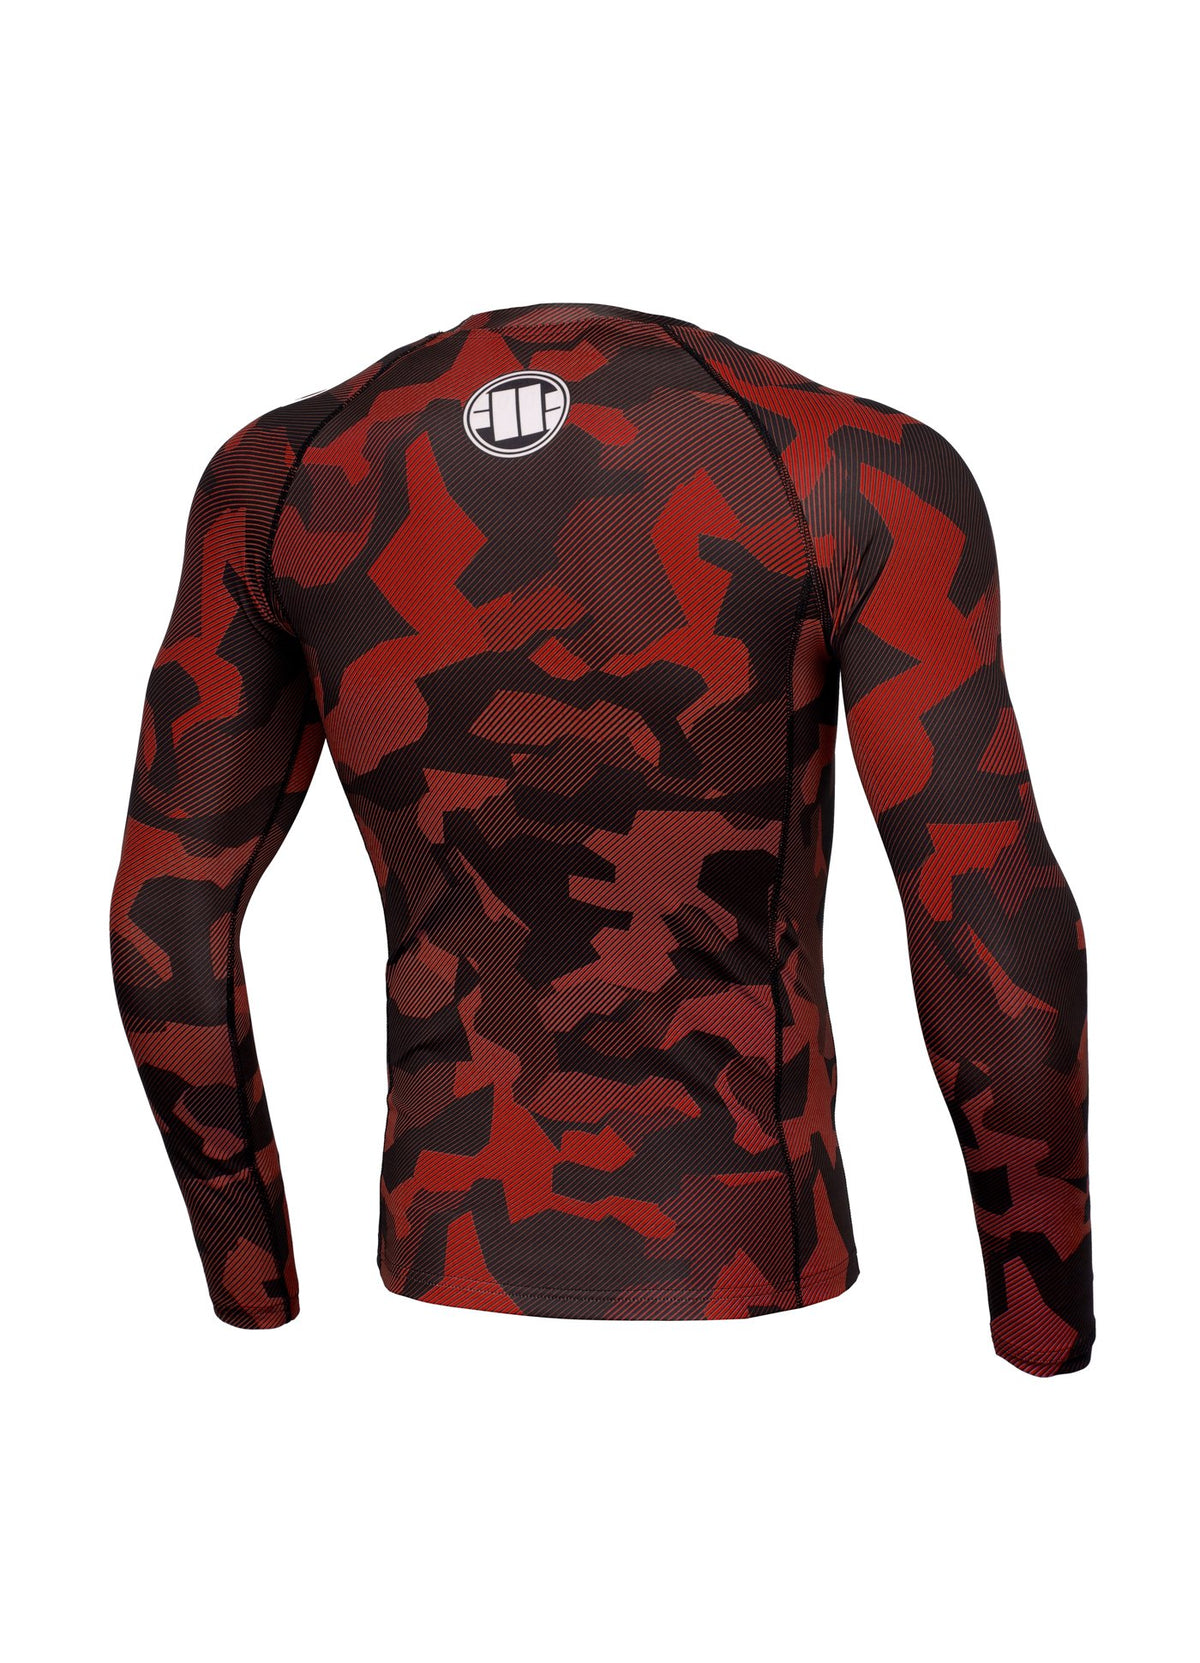 Rashguard longsleeve DILLARD Red - Pitbull West Coast U.S.A.